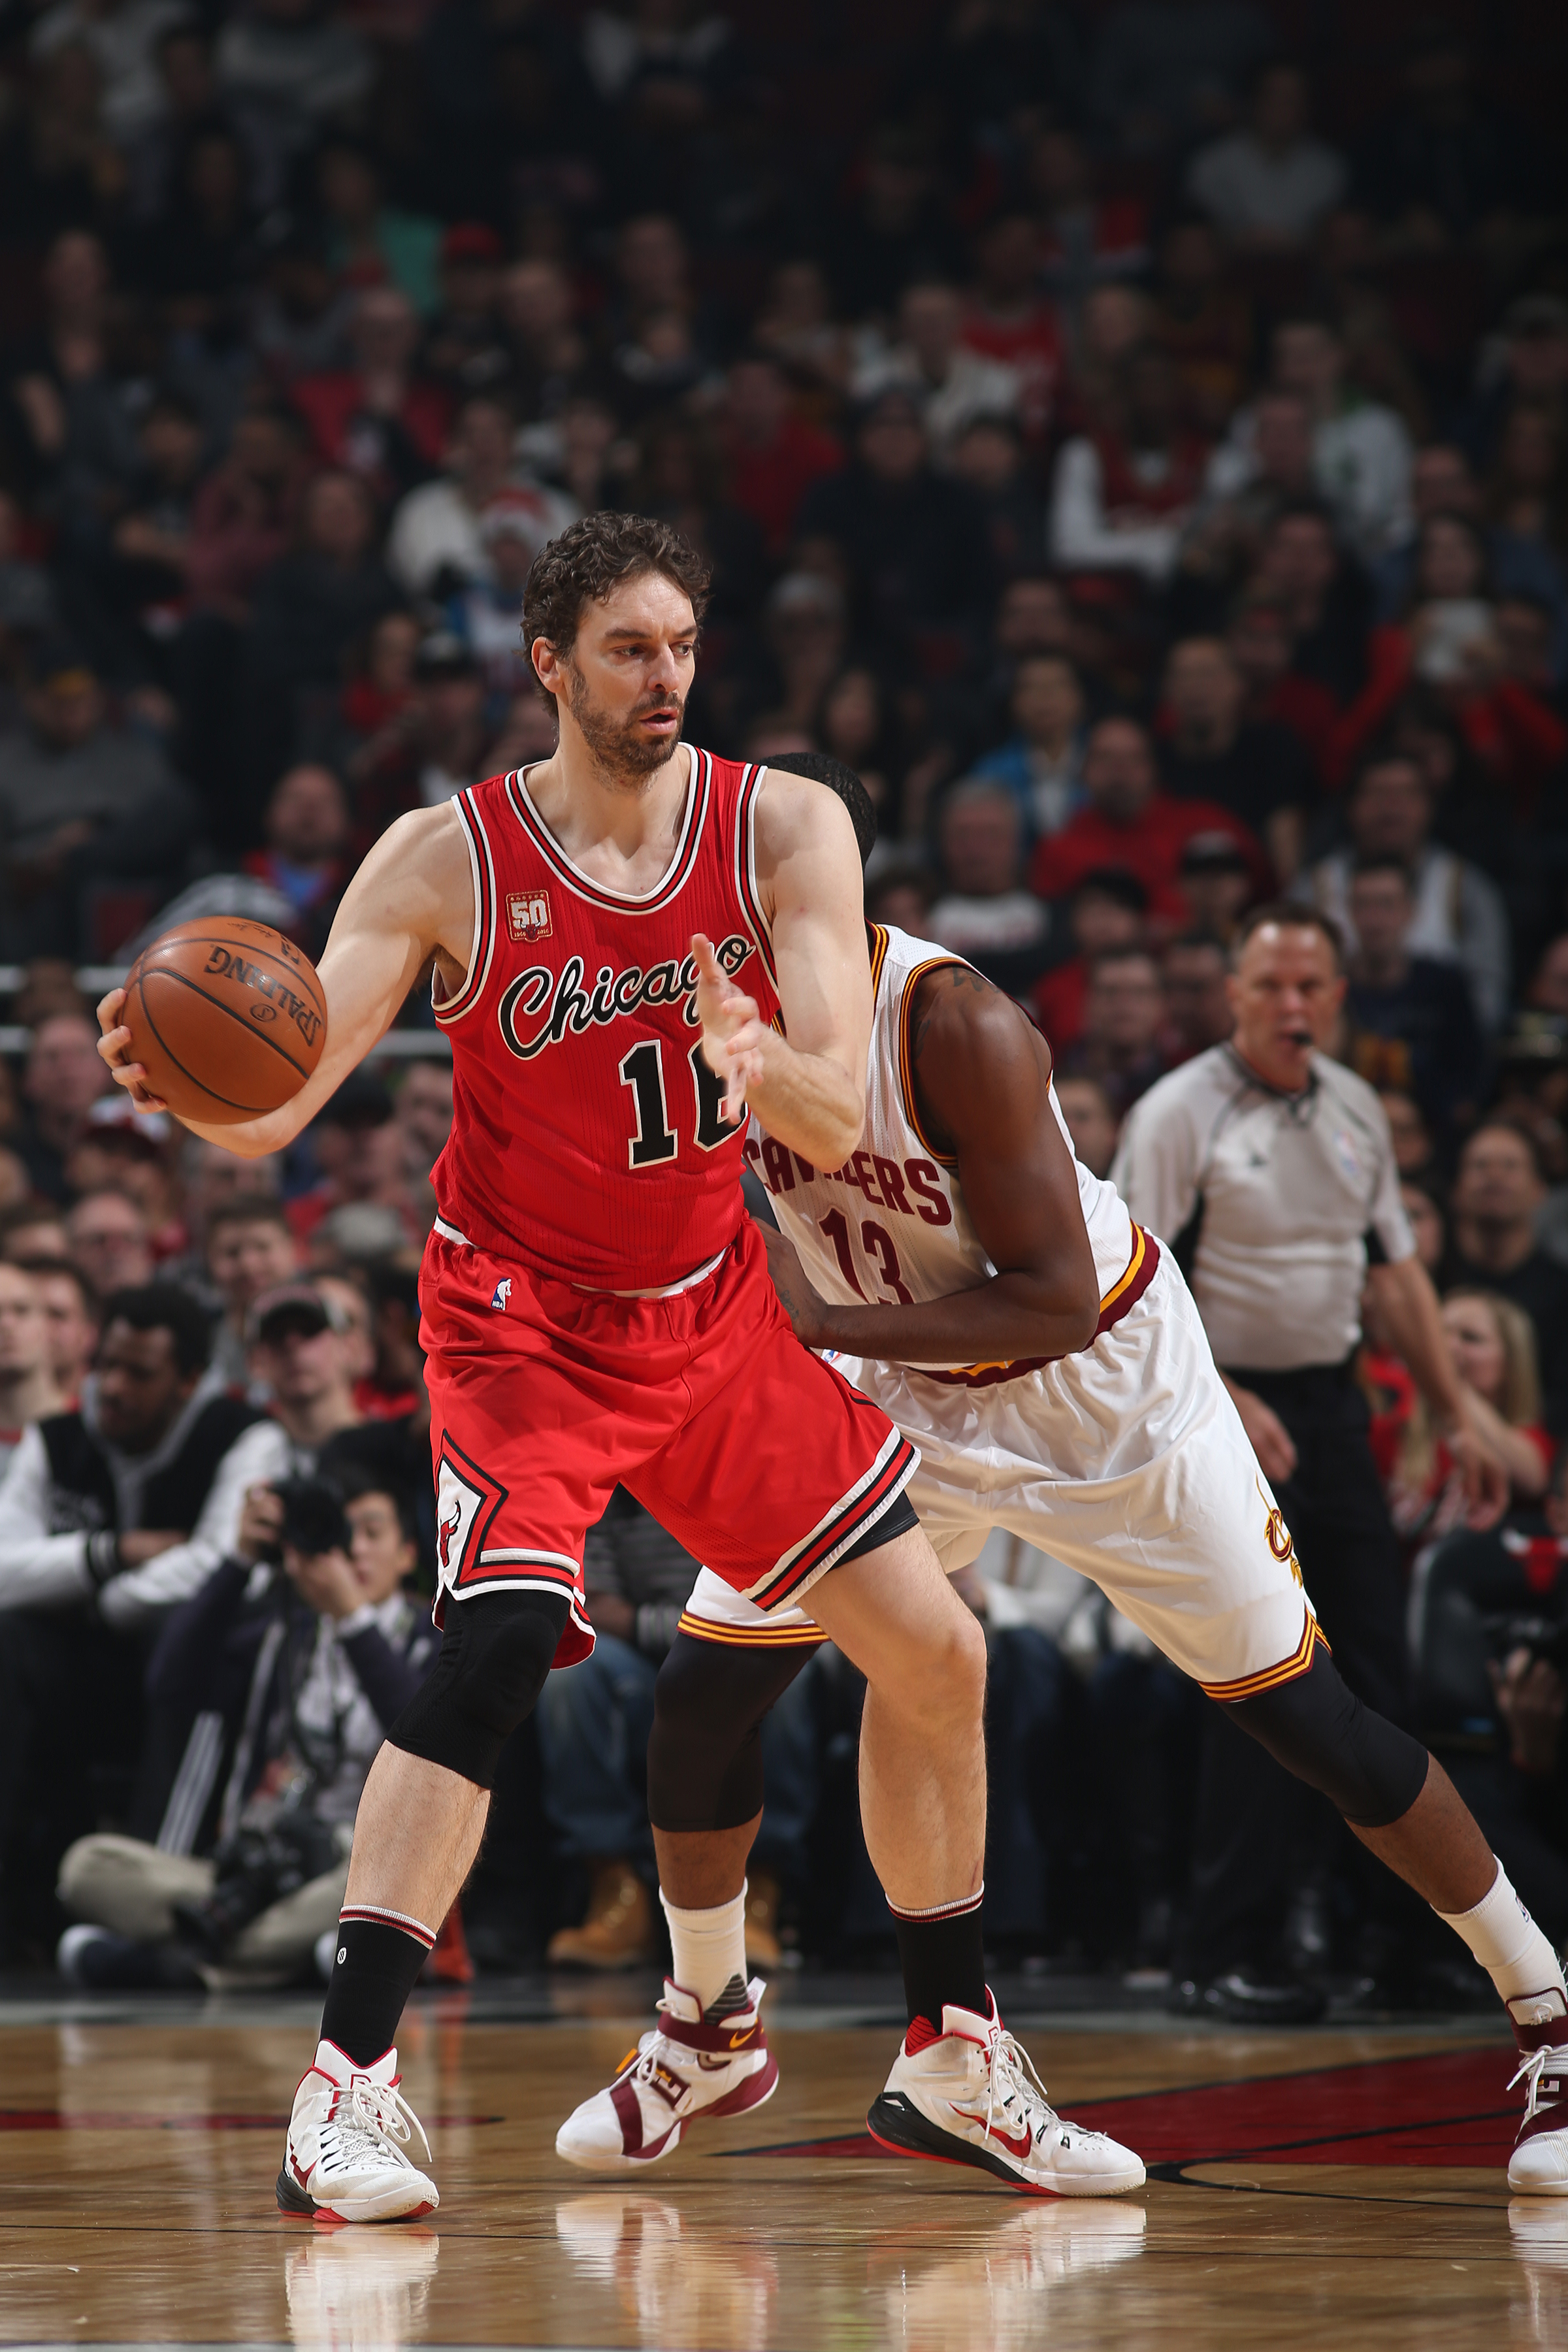 CHICAGO, IL - APRIL 9:  Pau Gasol #16 of the Chicago Bulls handles the ball against the Cleveland Cavaliers on April 9, 2016 at the United Center in Chicago, Illinois. (Photo by Gary Dineen/NBAE via Getty Images)